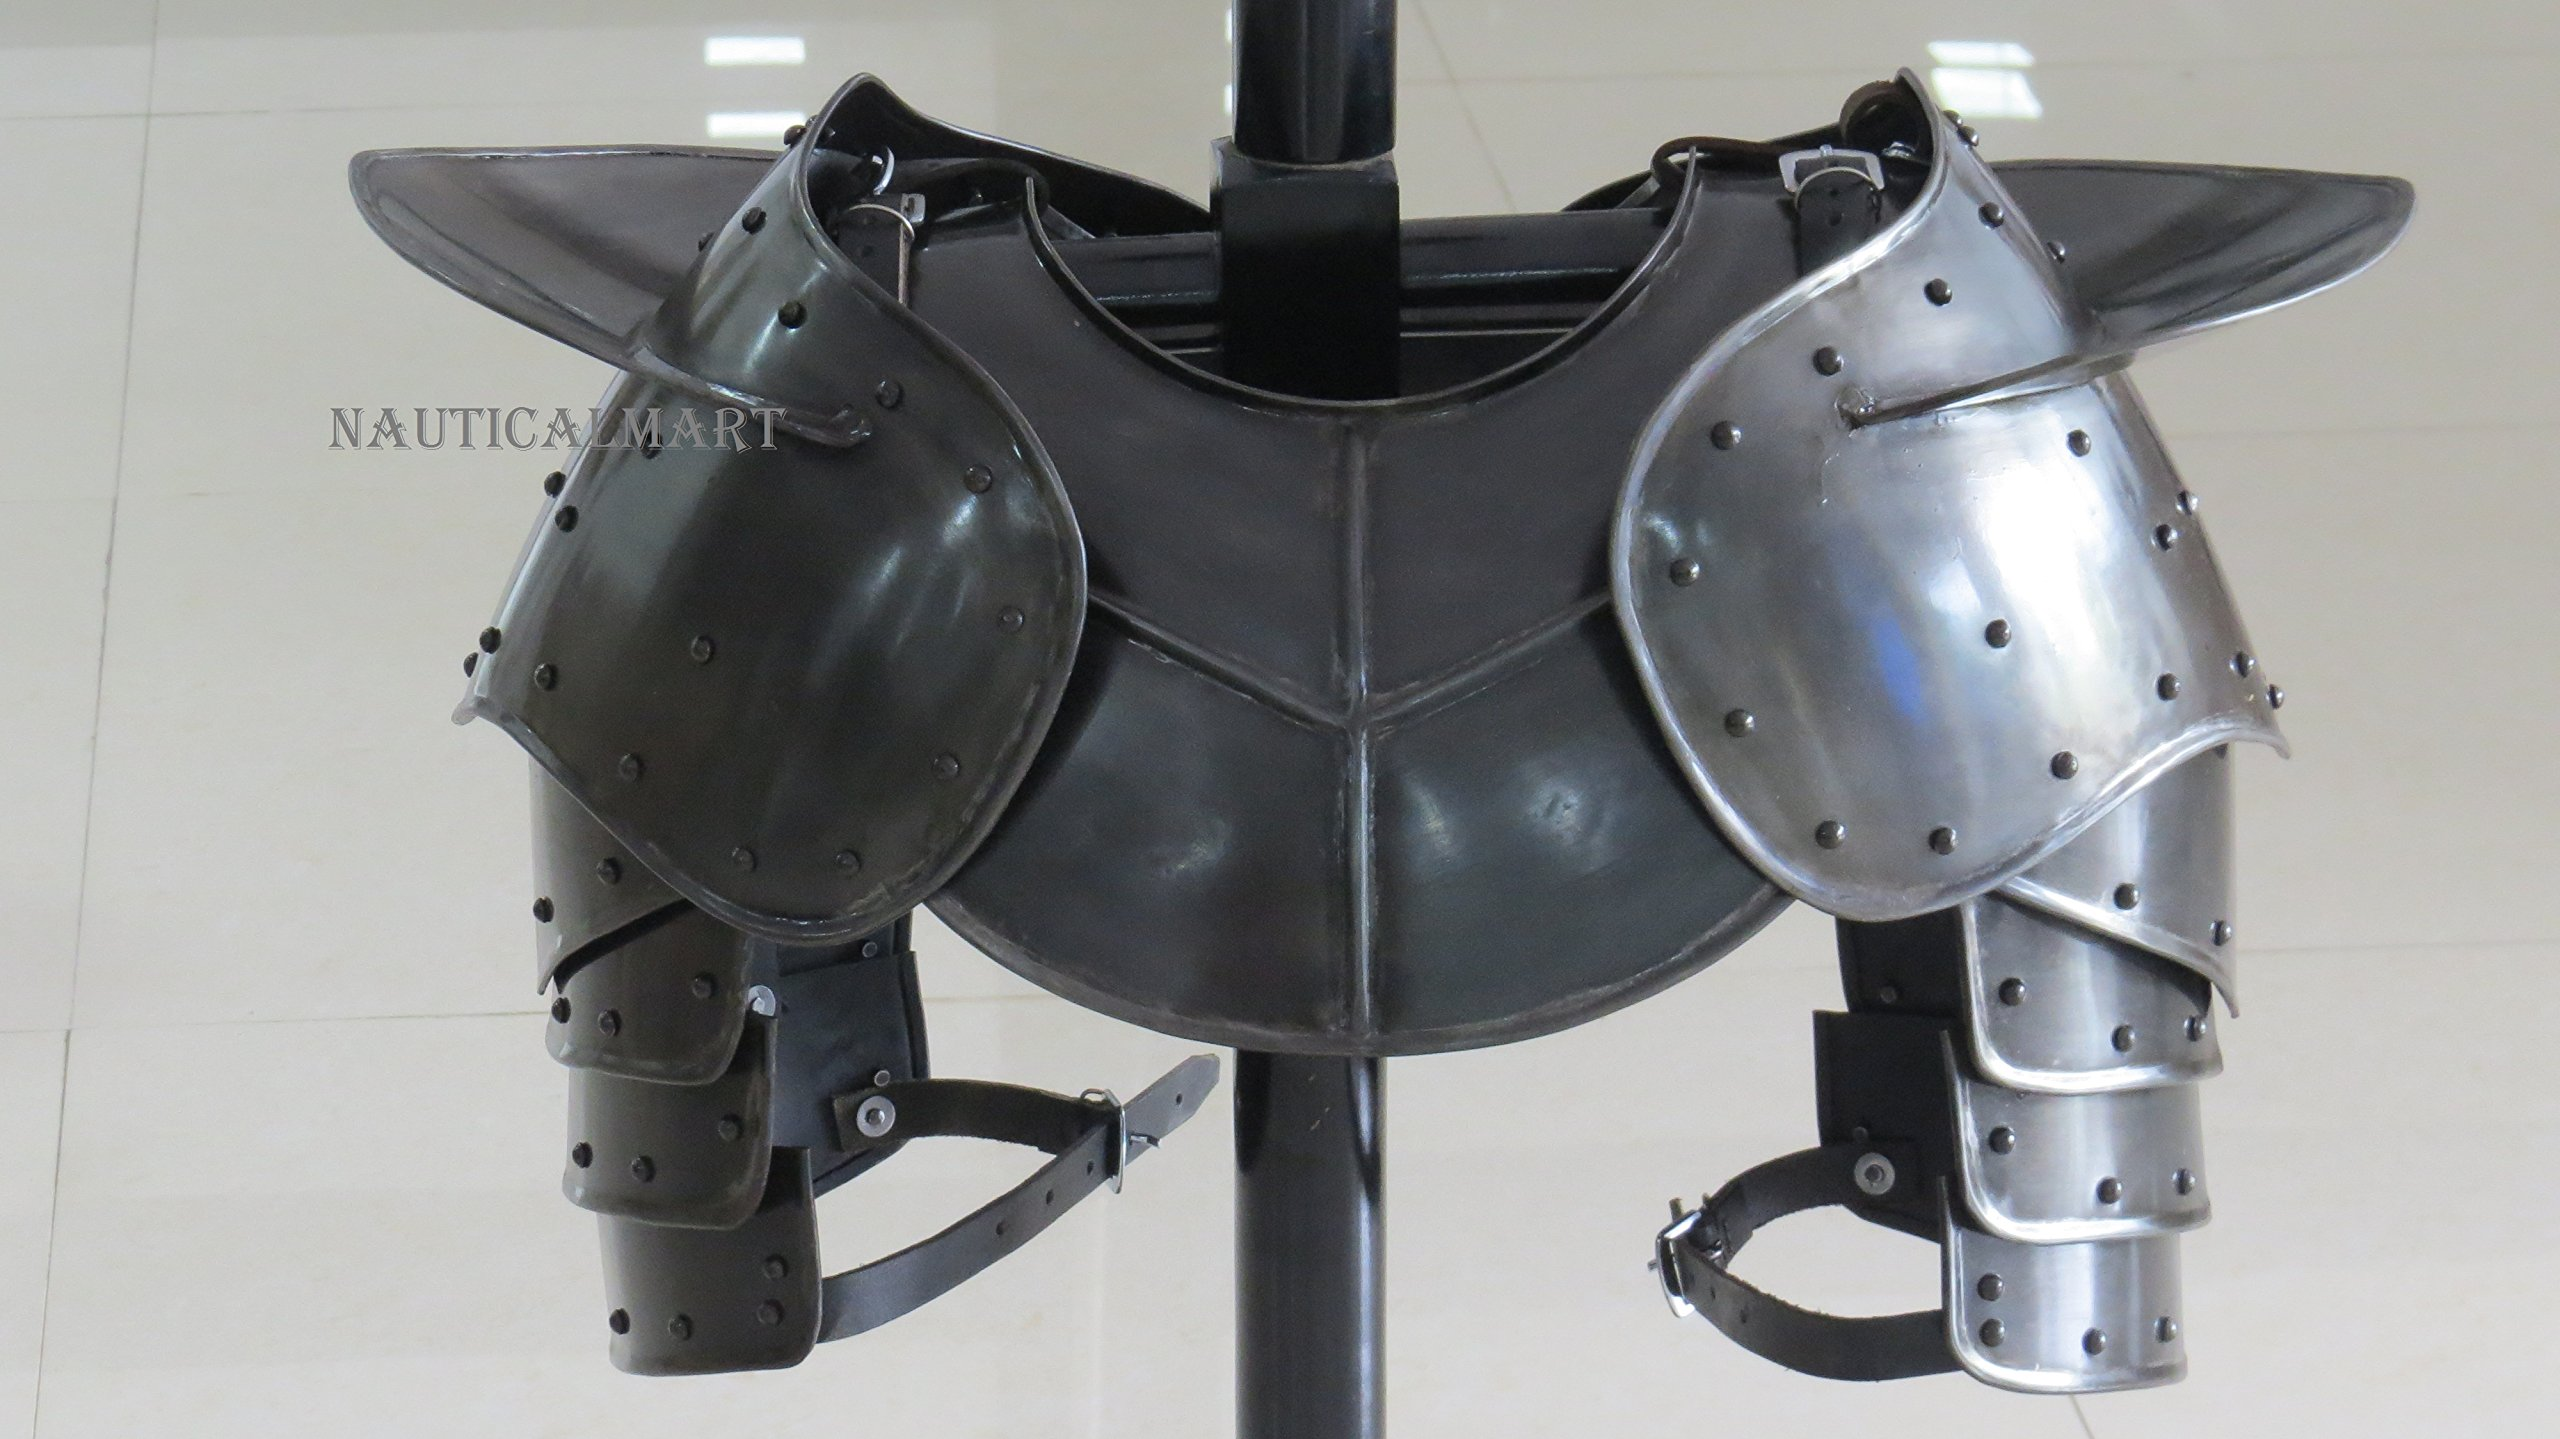 NauticalMart Dark Gothic Steel Gorget Neck Armor and Pauldron by NauticalMart